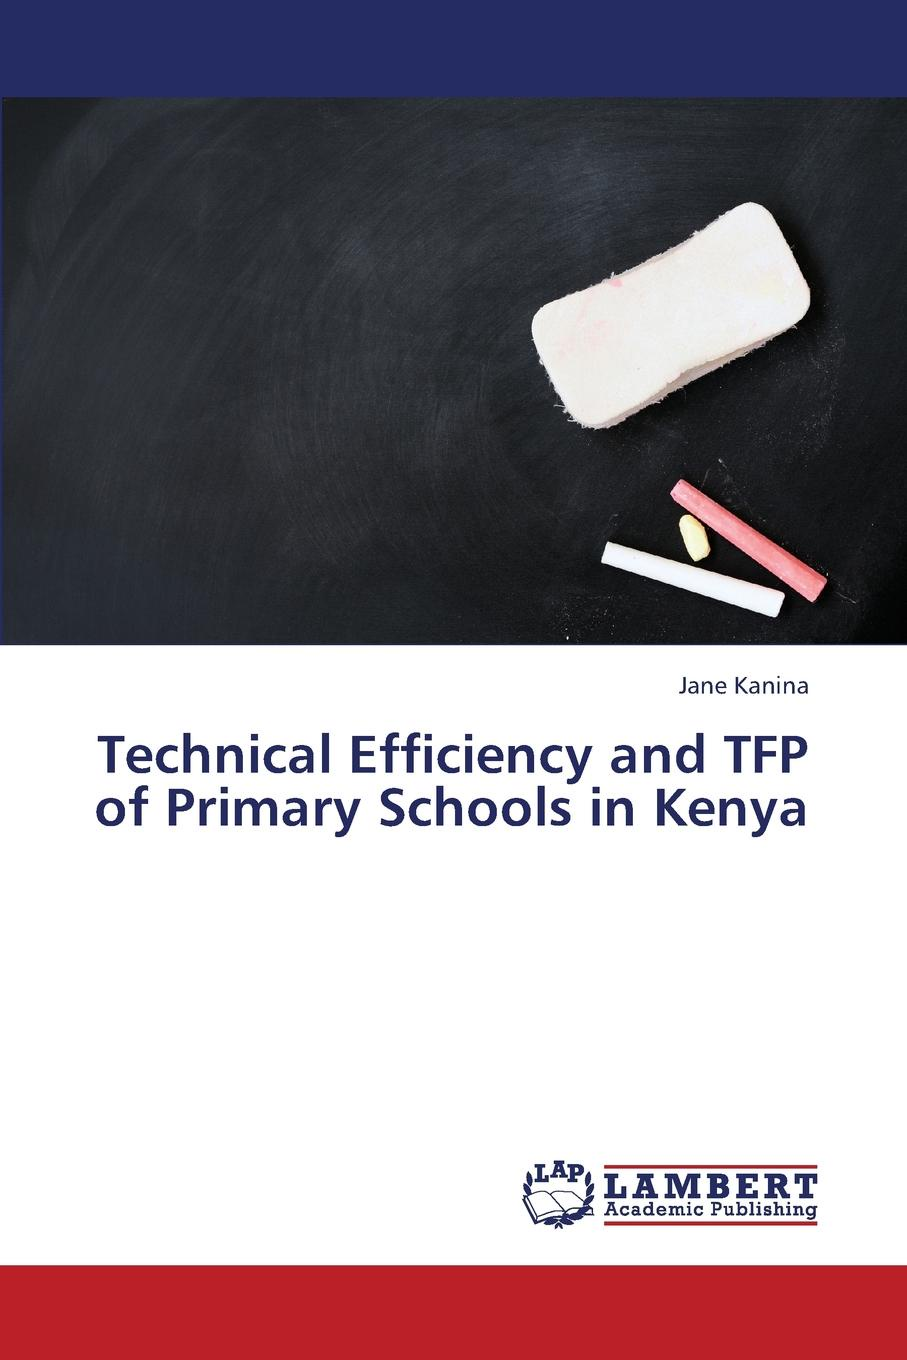 Kanina Jane Technical Efficiency and Tfp of Primary Schools in Kenya 1 2hp compact condenser chieves of higher seer seasonal energy efficiency ratio and eer energy efficiency ratio ratings